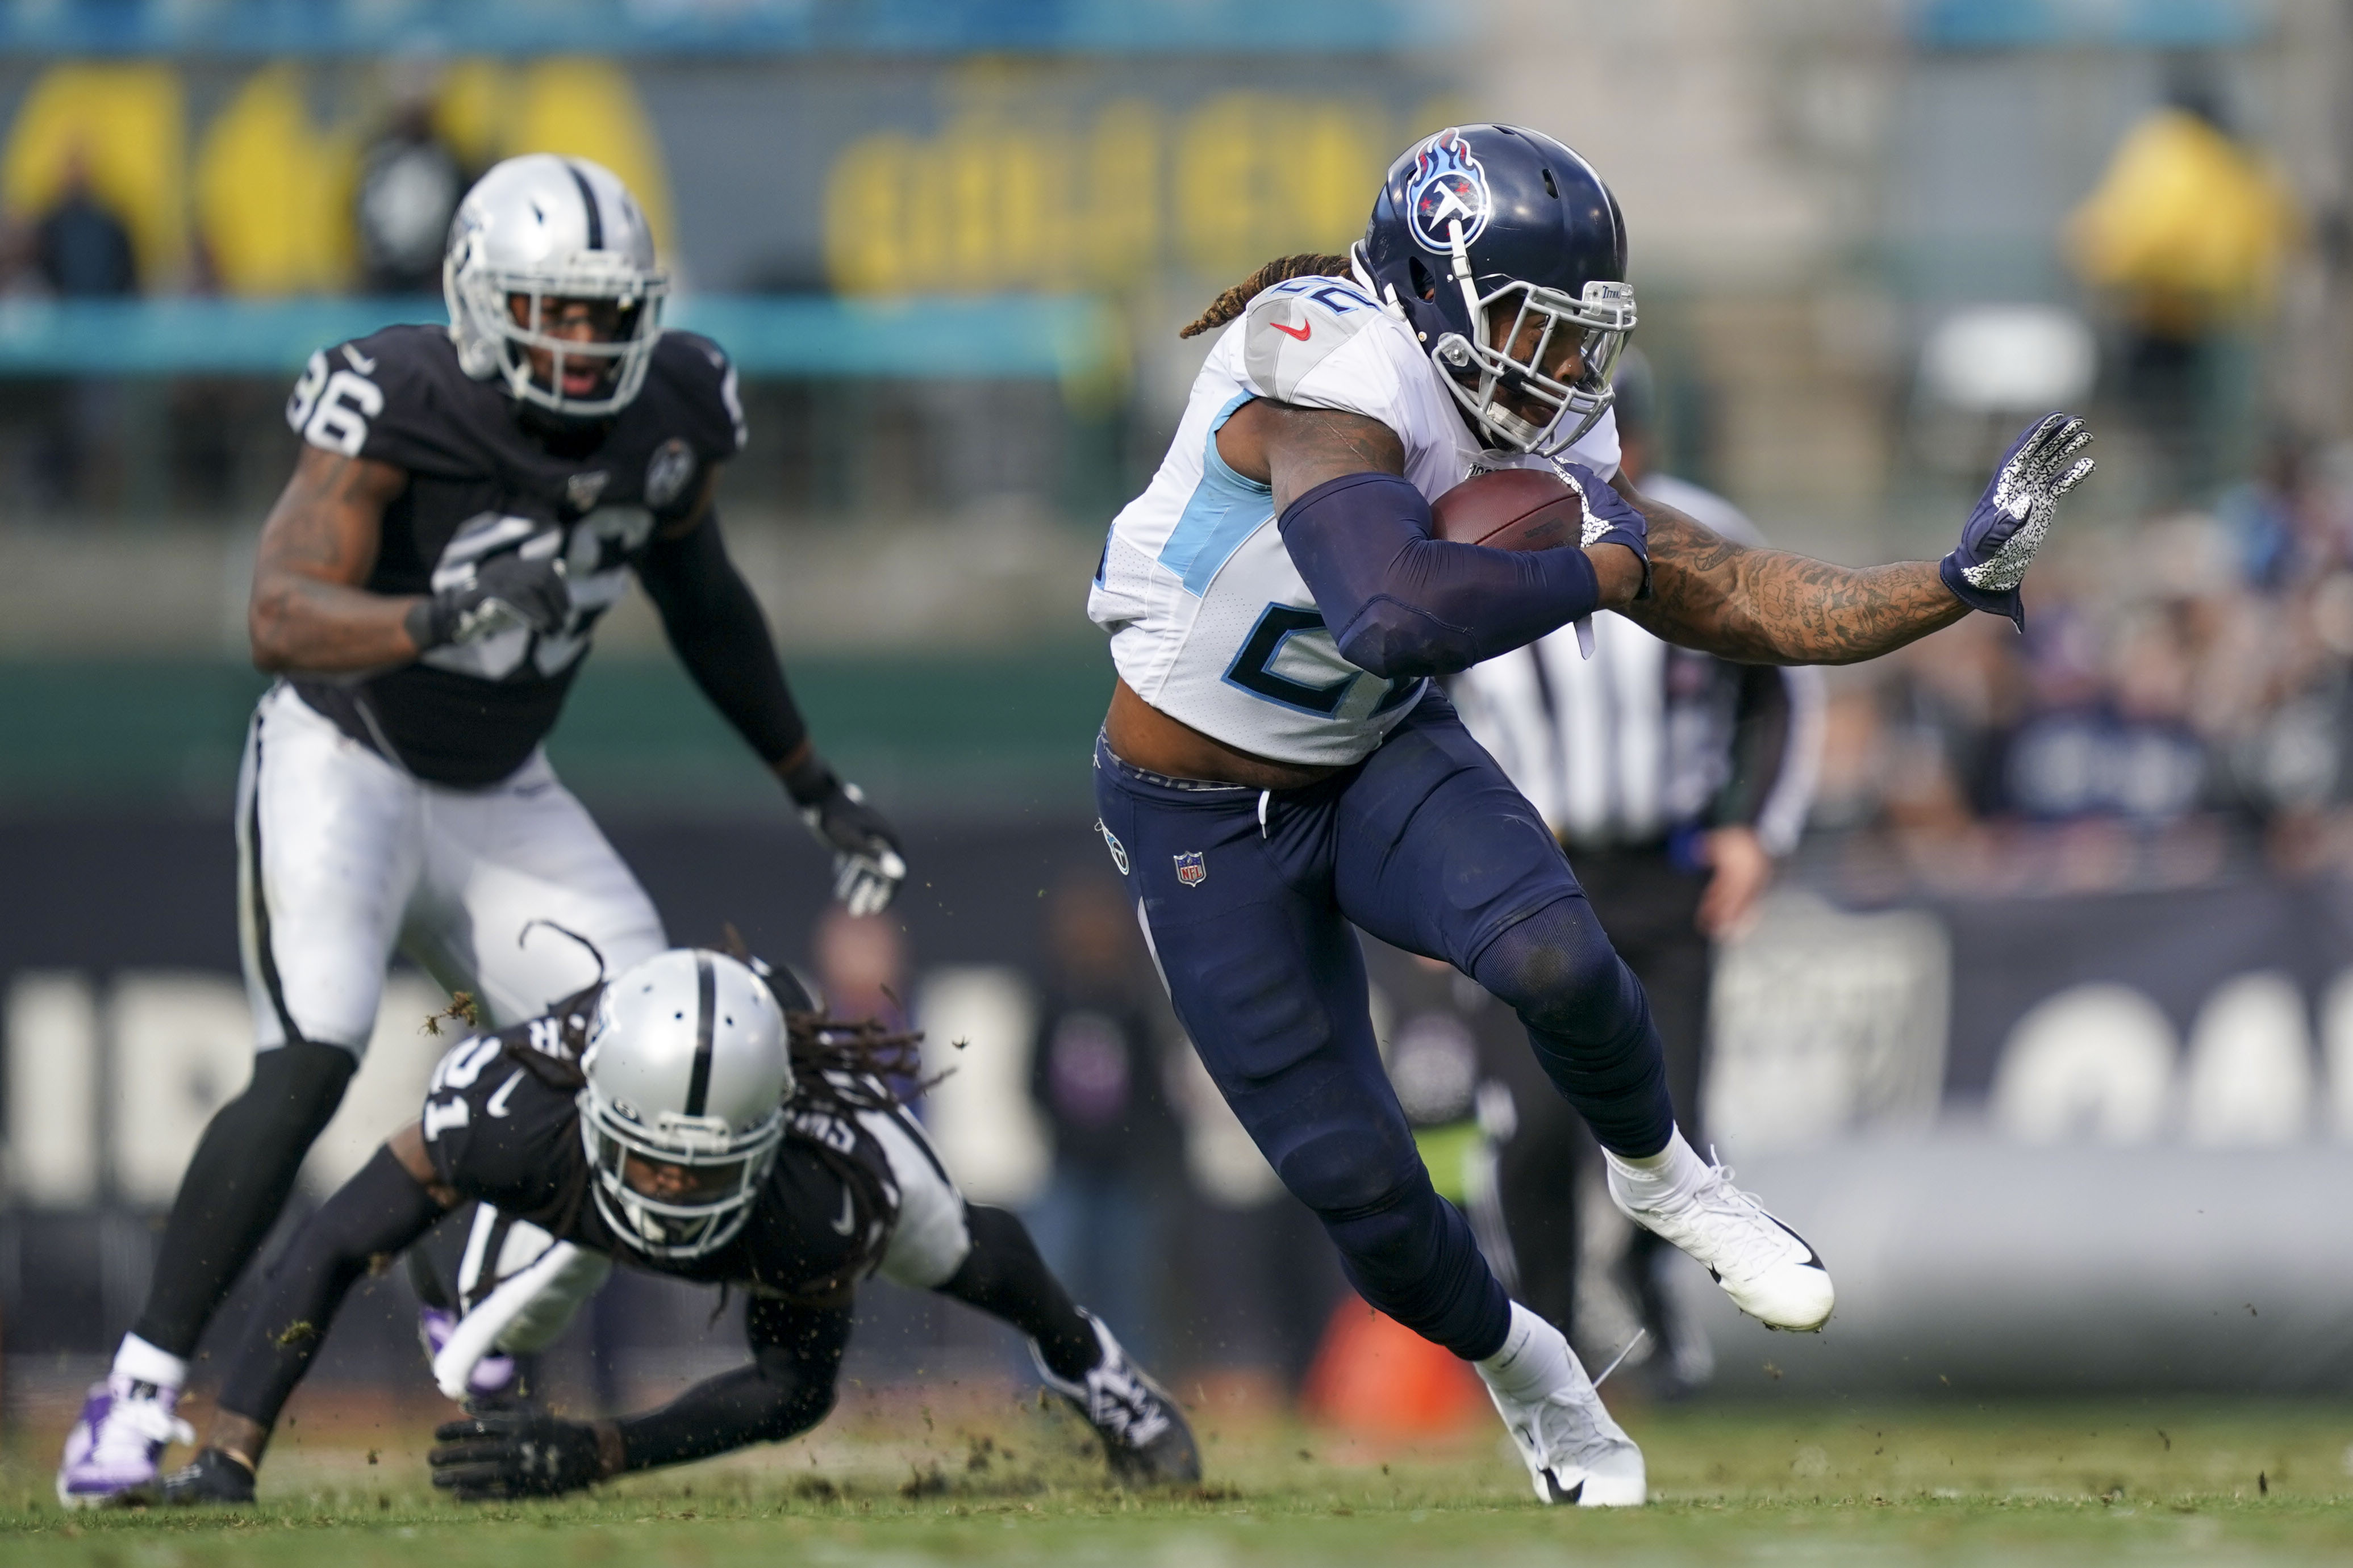 Tennessee Titans running back Derrick Henry runs the football against Oakland Raiders free safety D.J. Swearinger during the first quarter at Oakland Coliseum.